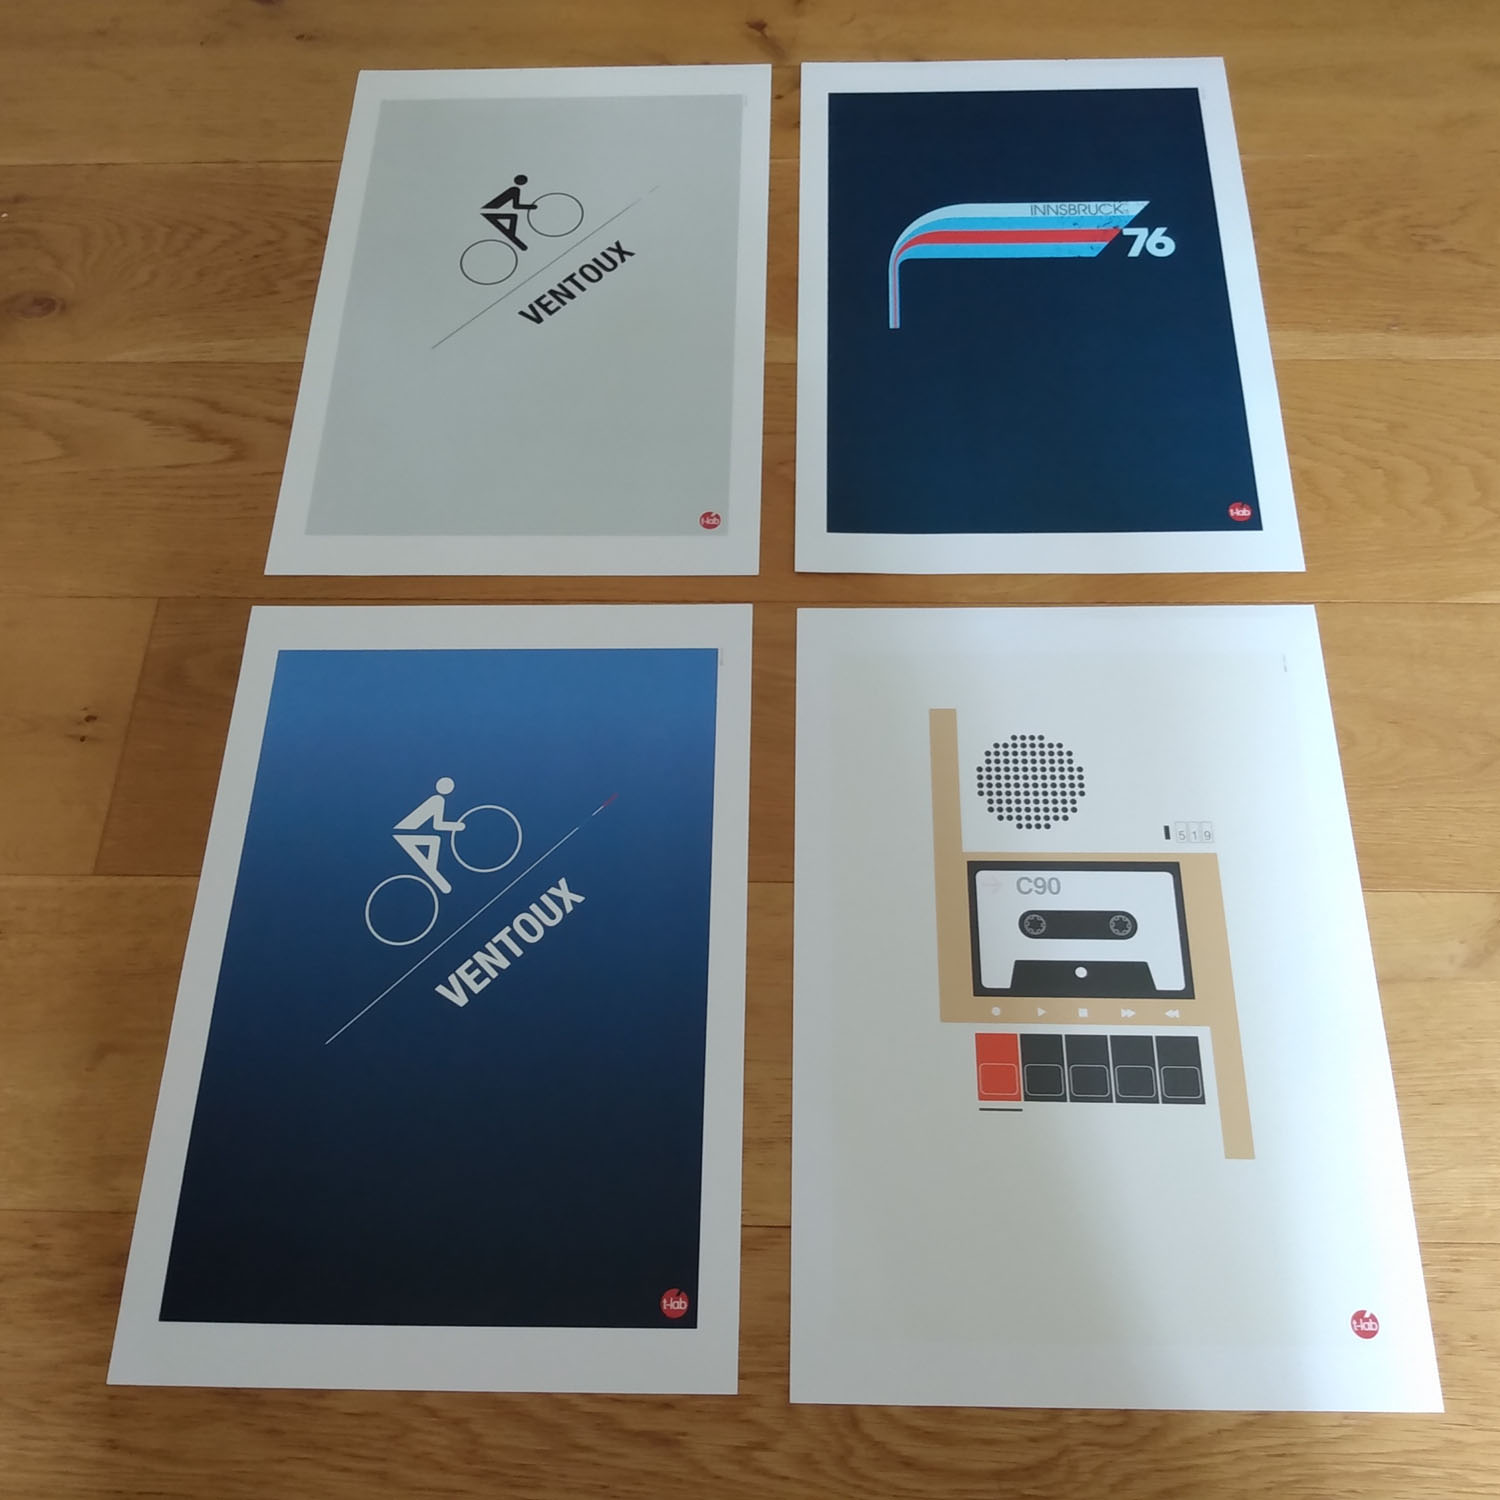 T-lab posters